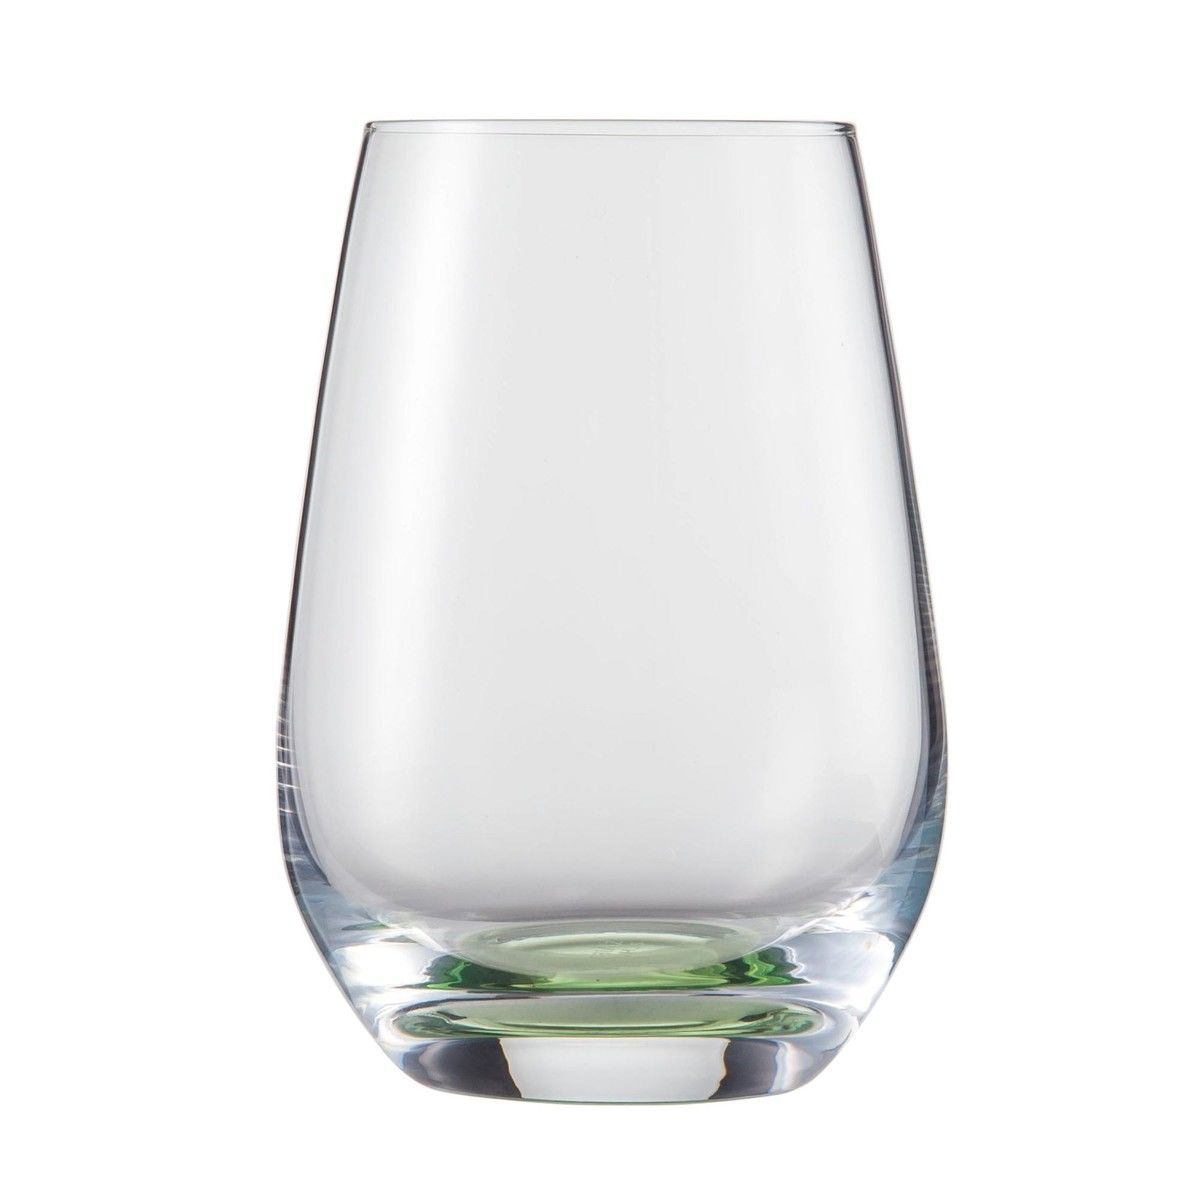 vina touch tumbler glass set of 6 schott zwiesel. Black Bedroom Furniture Sets. Home Design Ideas